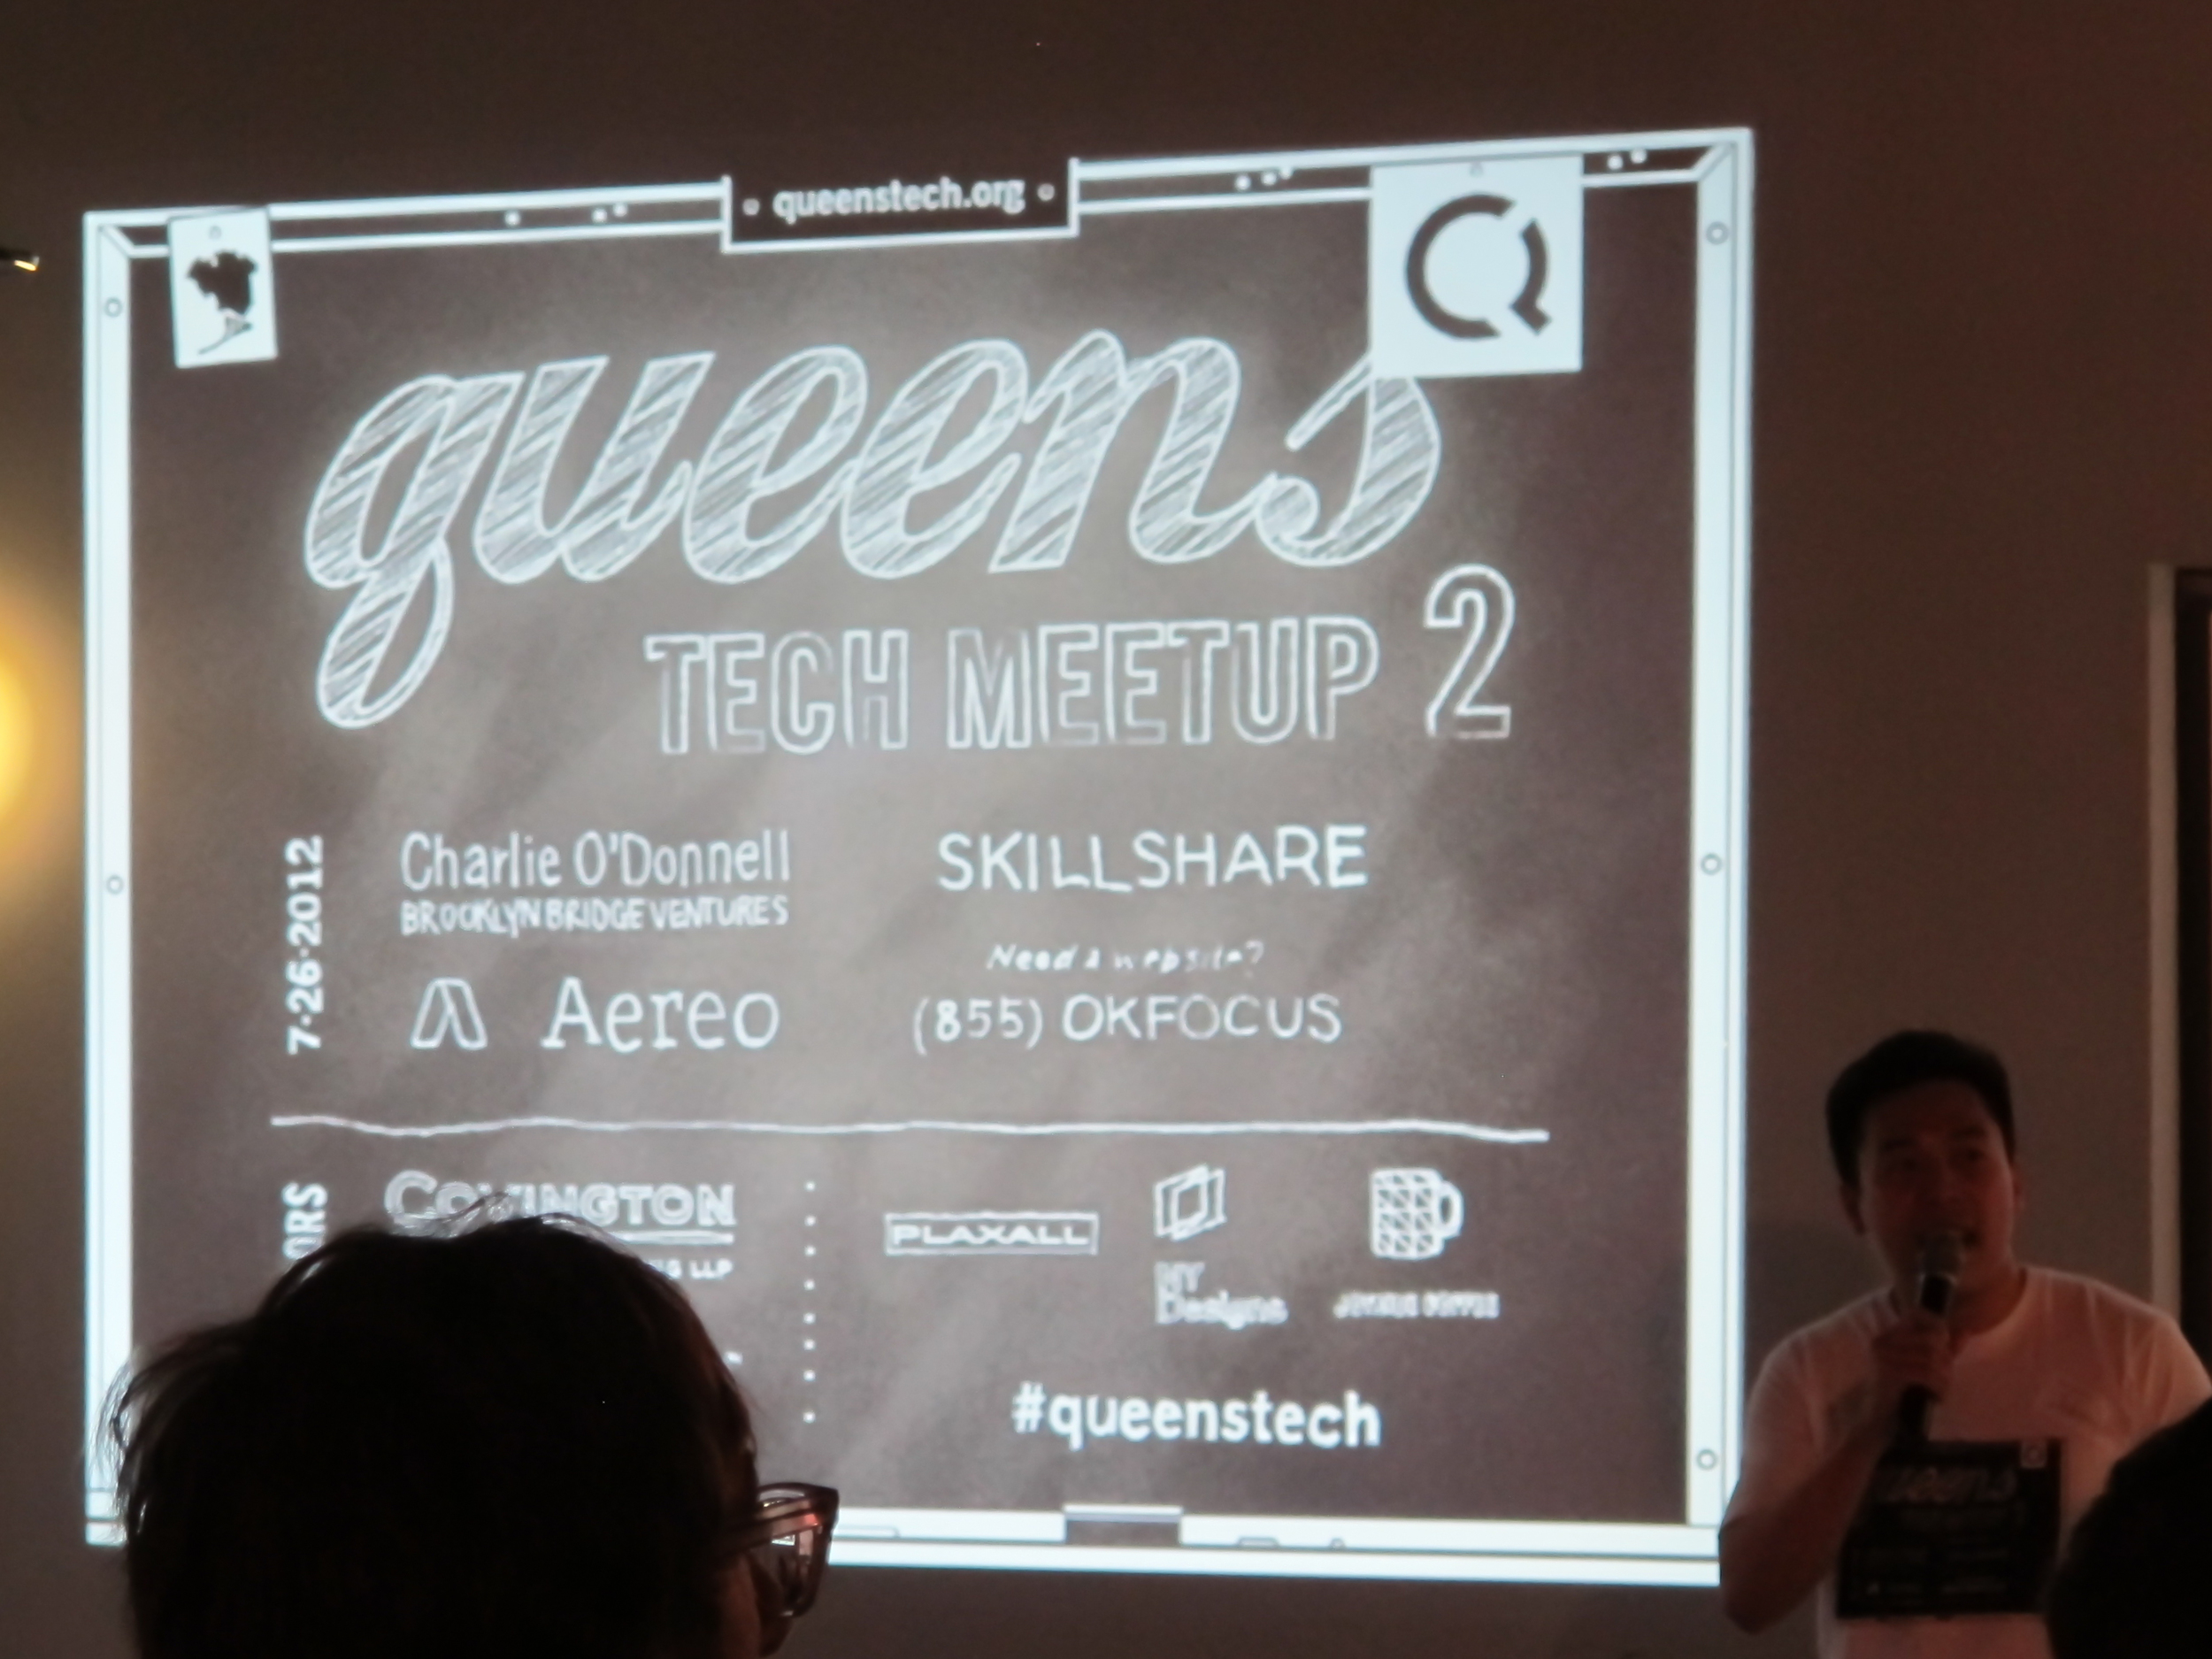 Queens-Tech-Meetup-3-of-3.jpg